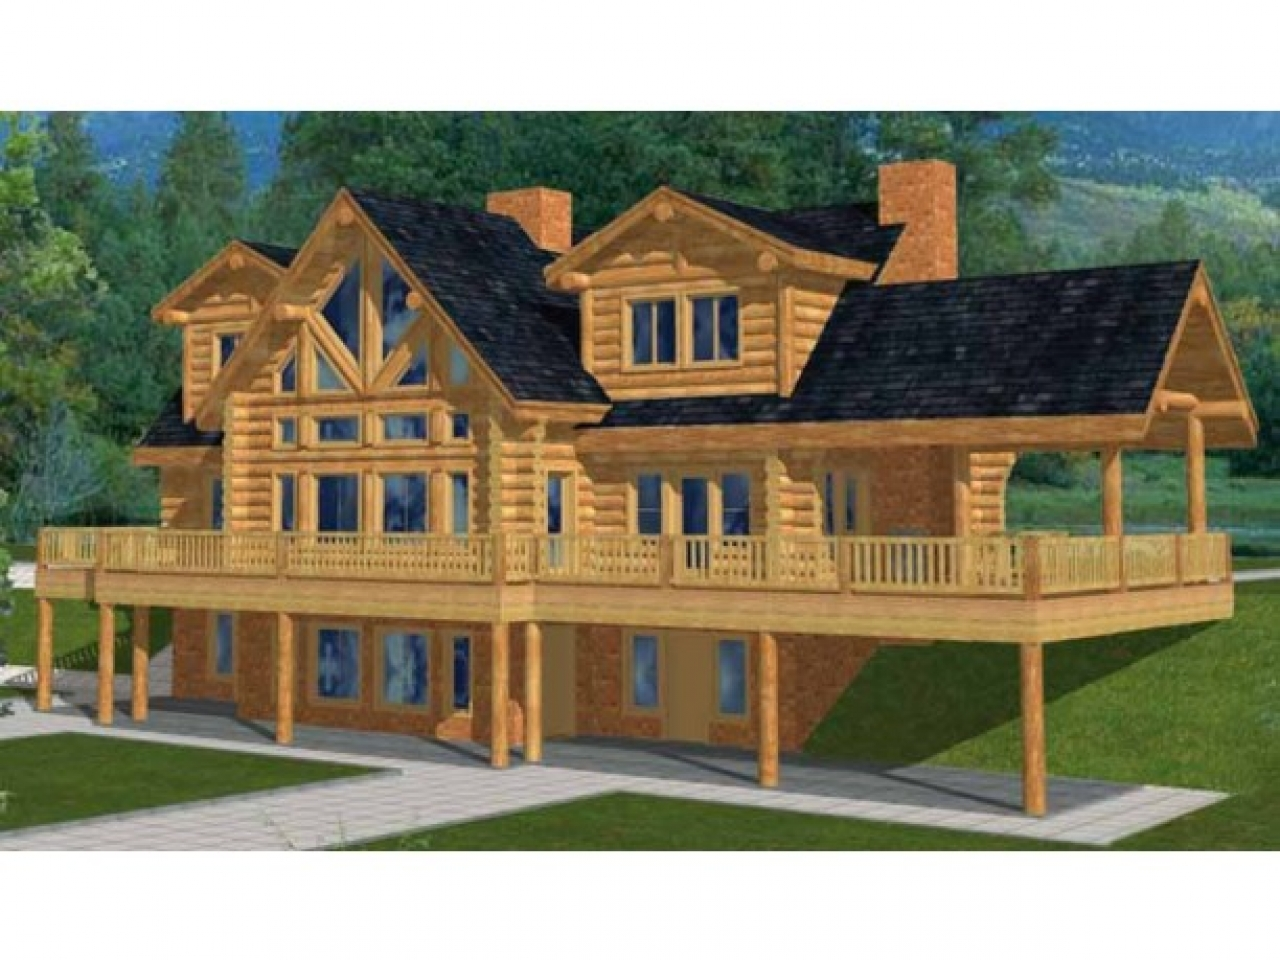 Two story log cabin house plans inexpensive modular homes for Cabin house plans free